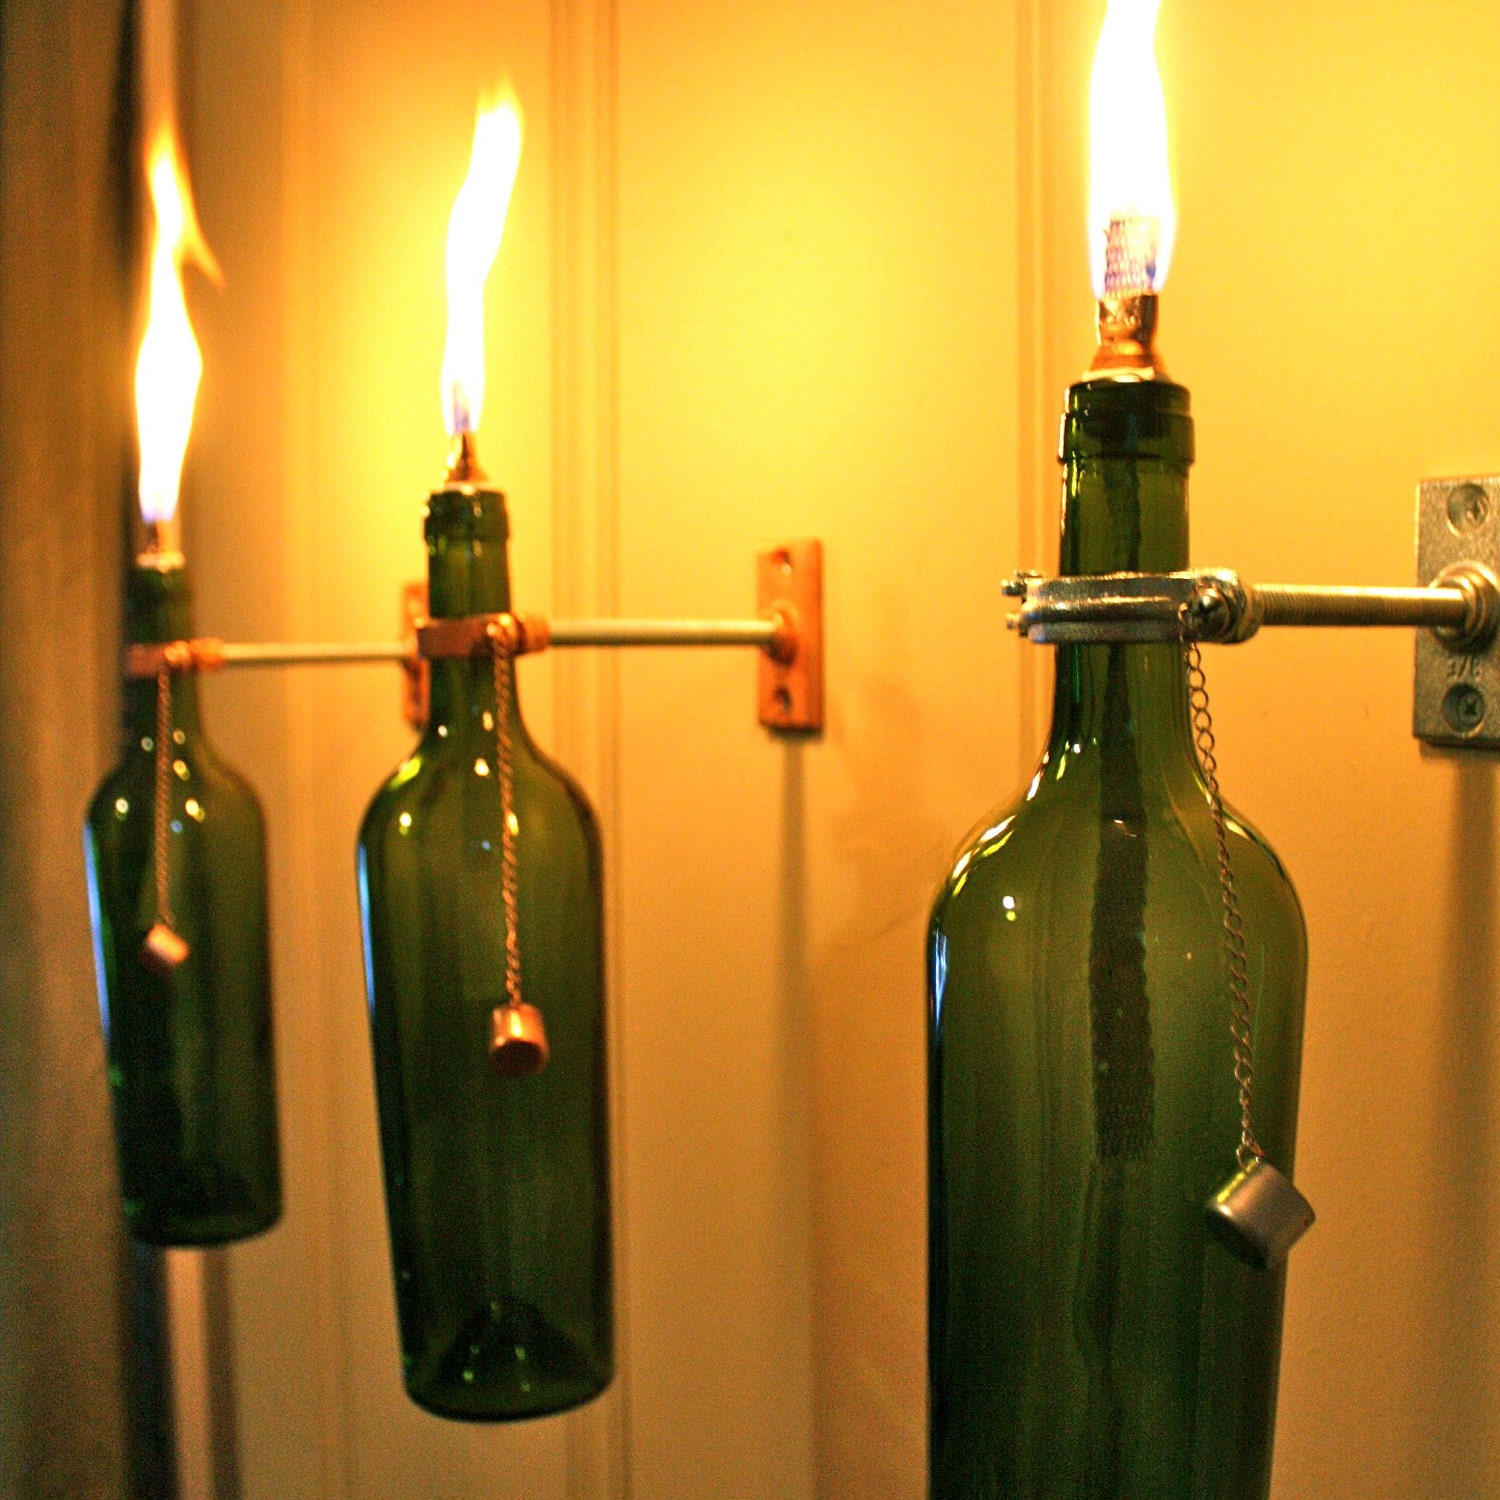 Lights Hanging On Wall : 3 Wine Bottle Oil Lamps - INDOOR - Gift for Her - Hanging